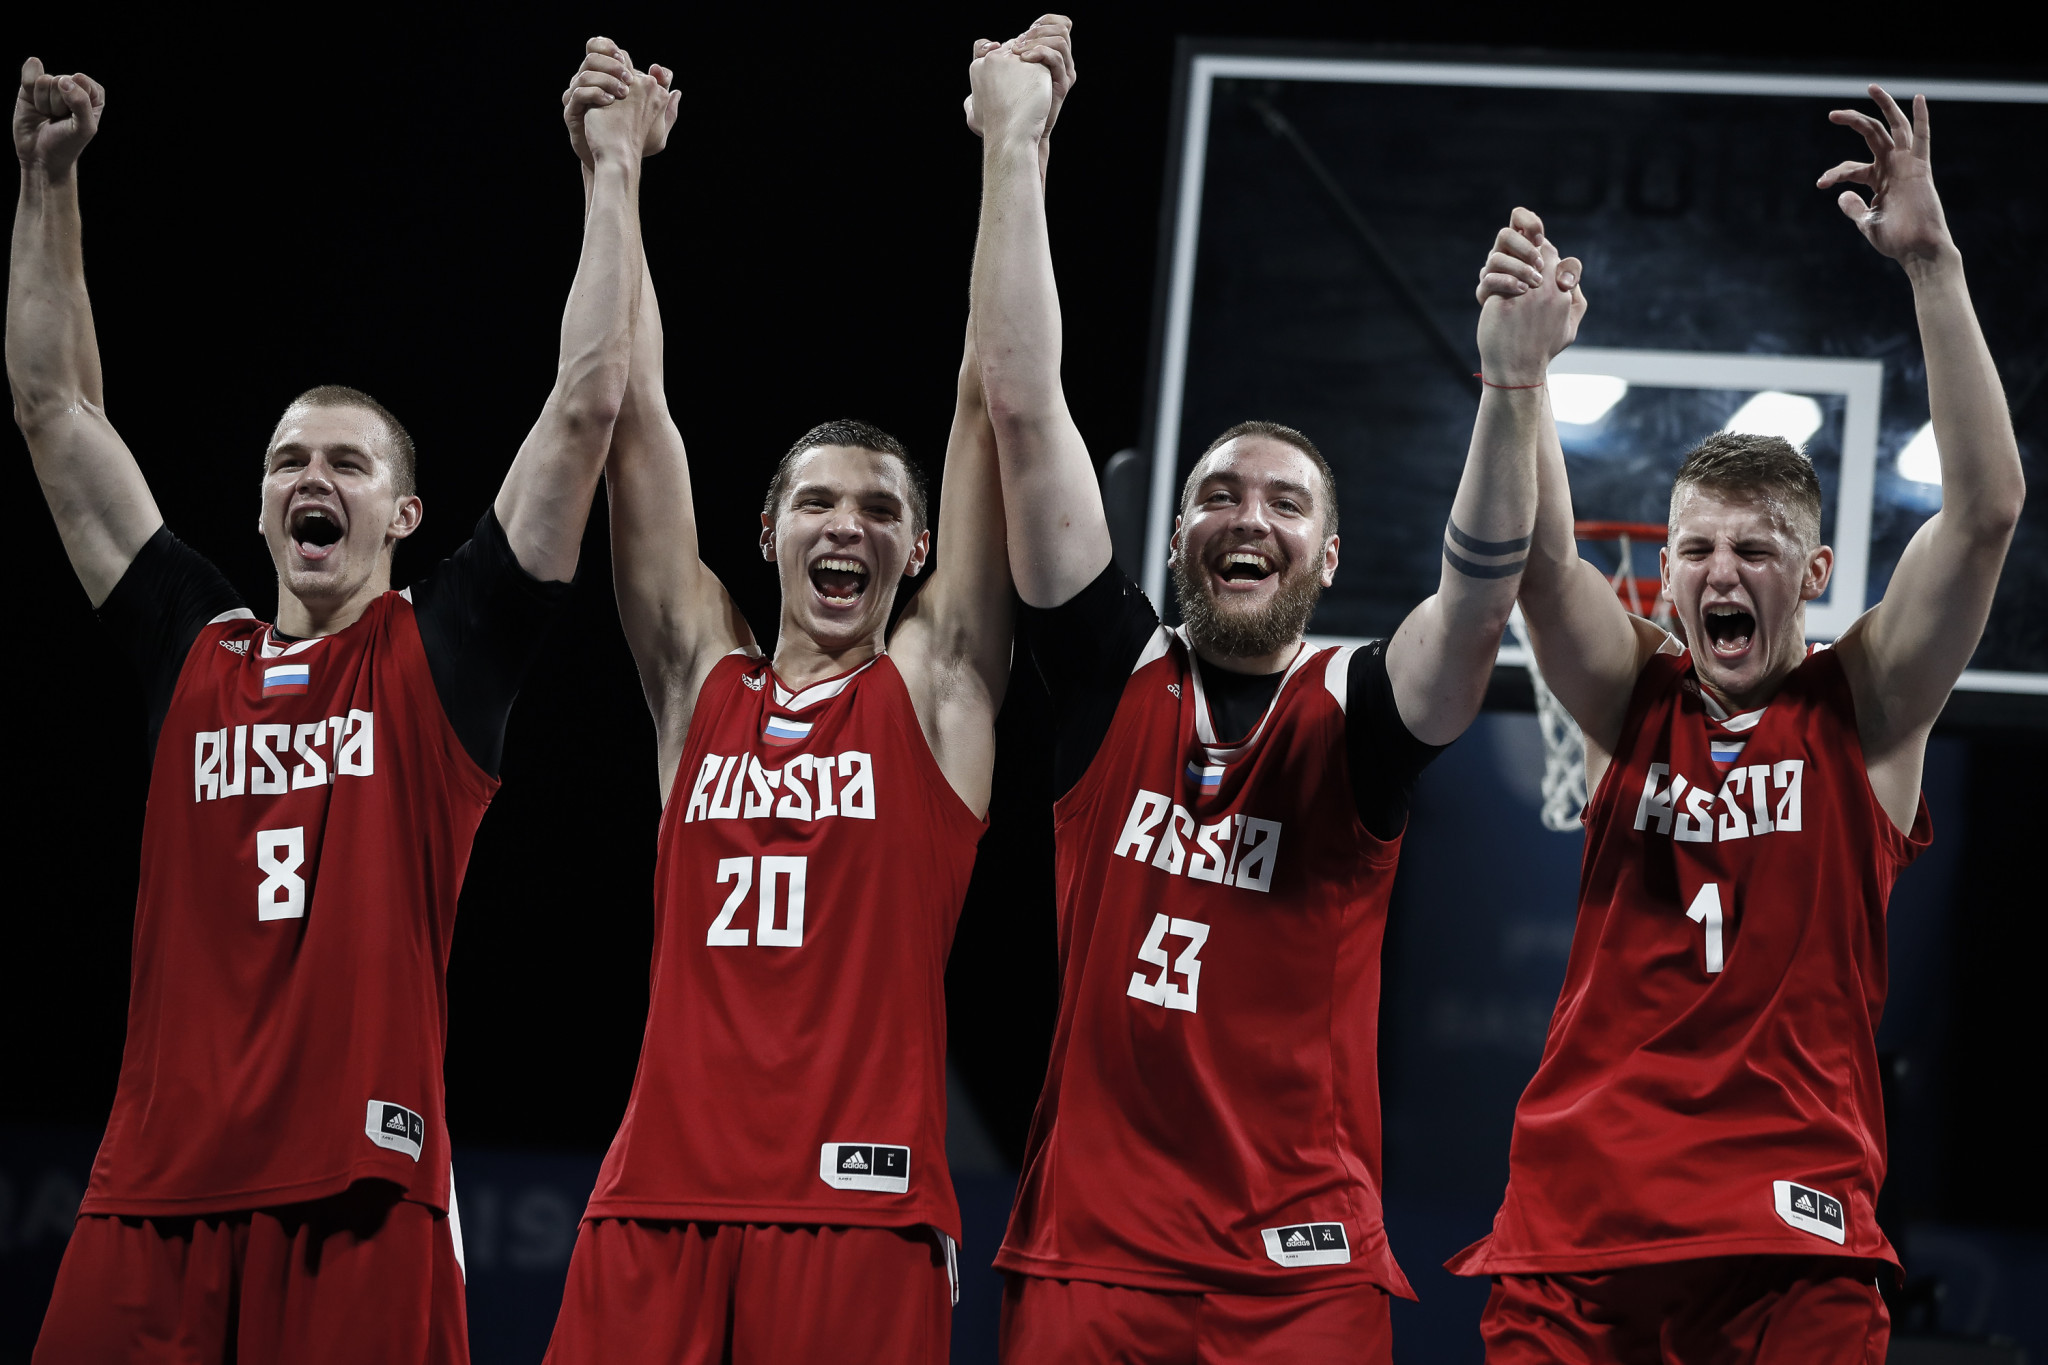 Young star leads Russia to men's 3x3 basketball title at ANOC World Beach Games